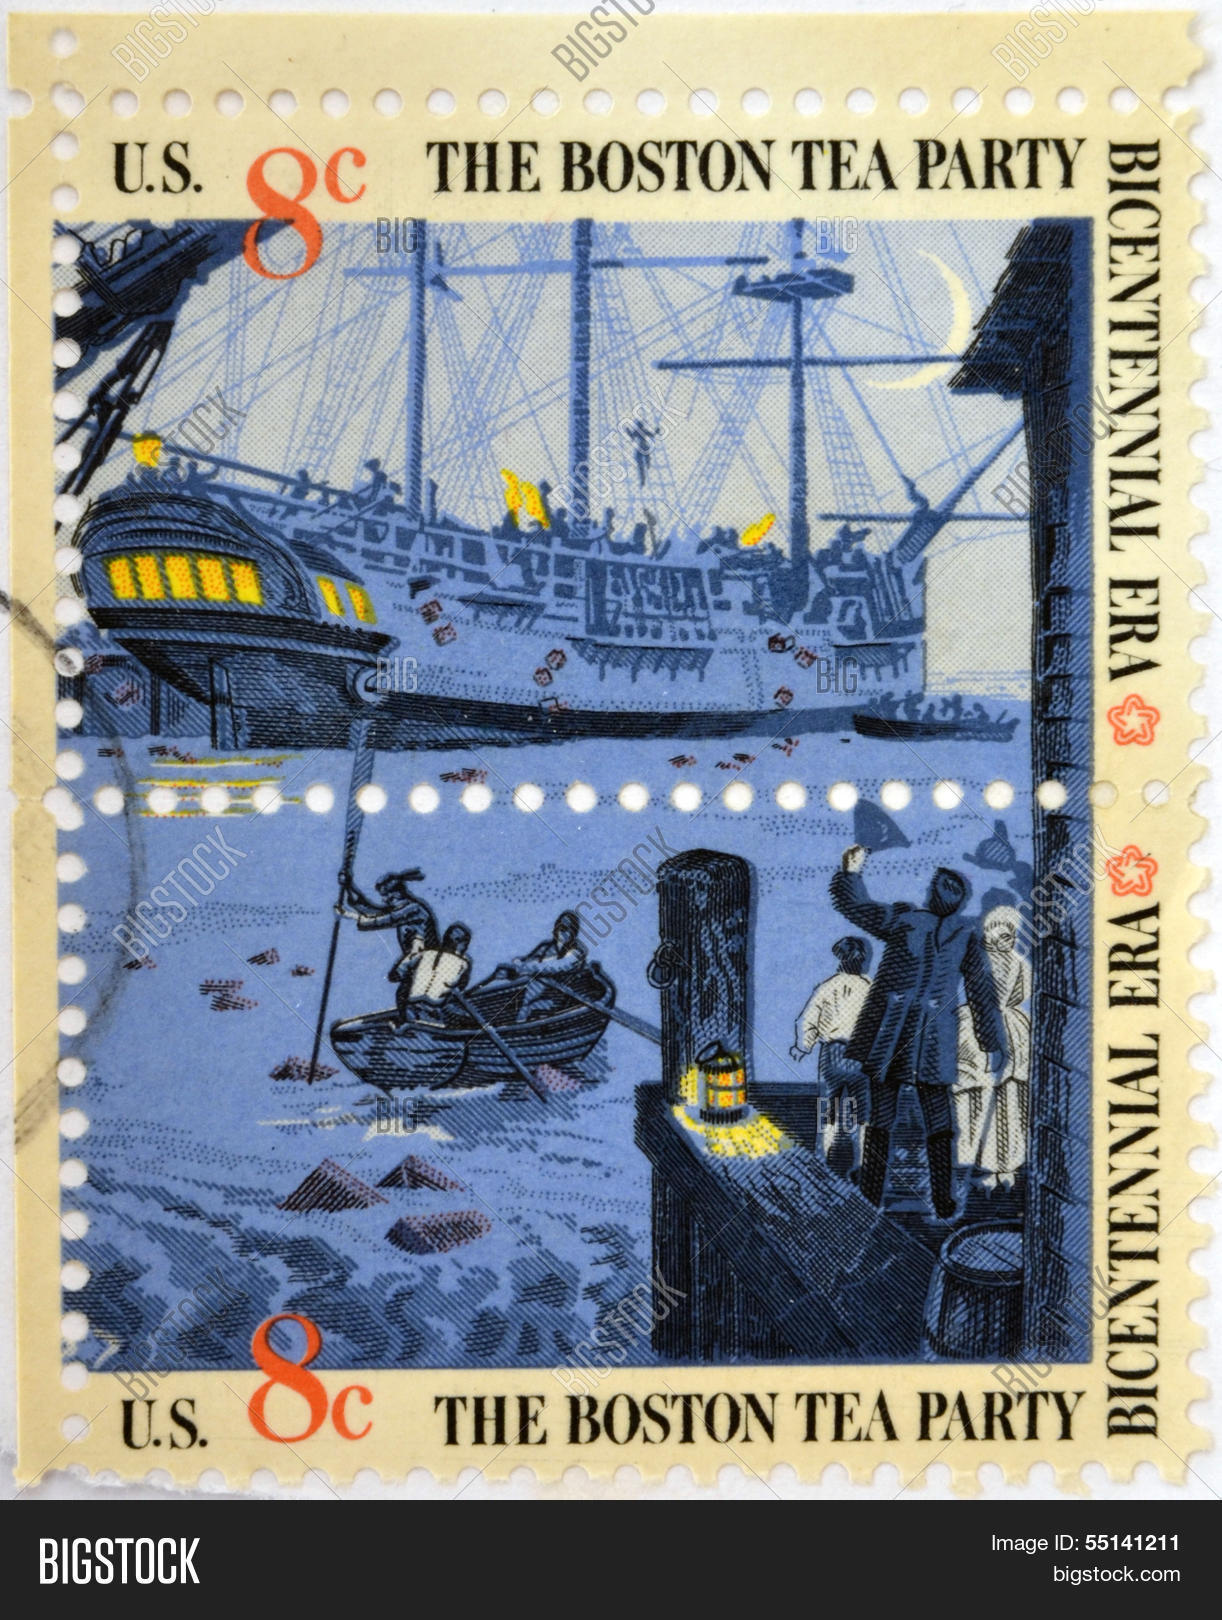 Stamp To Commemorate The Boston Tea Party As Part Of Bicentennial Celebration In USA